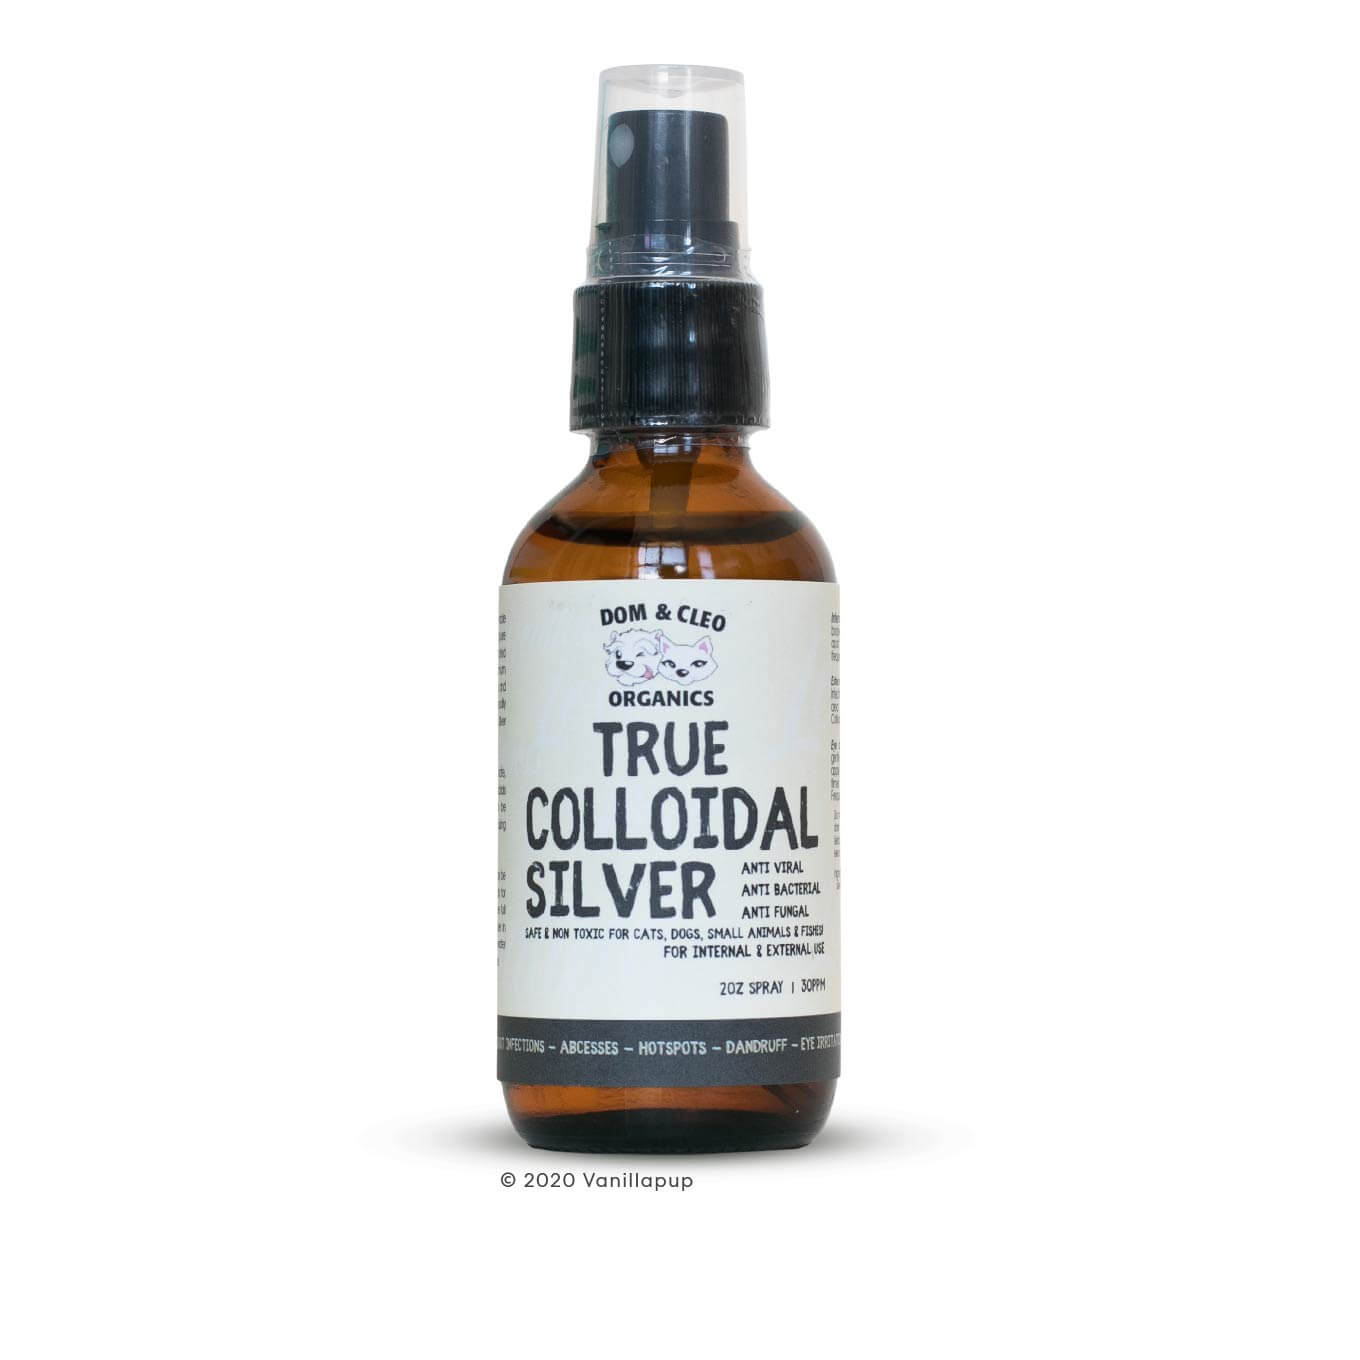 Dom & Cleo Organics True Colloidal Silver Spray (2oz/60ml) - Cats, Dogs, Dom & Cleo Organics, First Aid, Grooming Essentials, Health, Hot Spots, Latte, Paw Licking, Skin, Supplements, Tear Stains, Vision - Vanillapup - Online Pet Shop